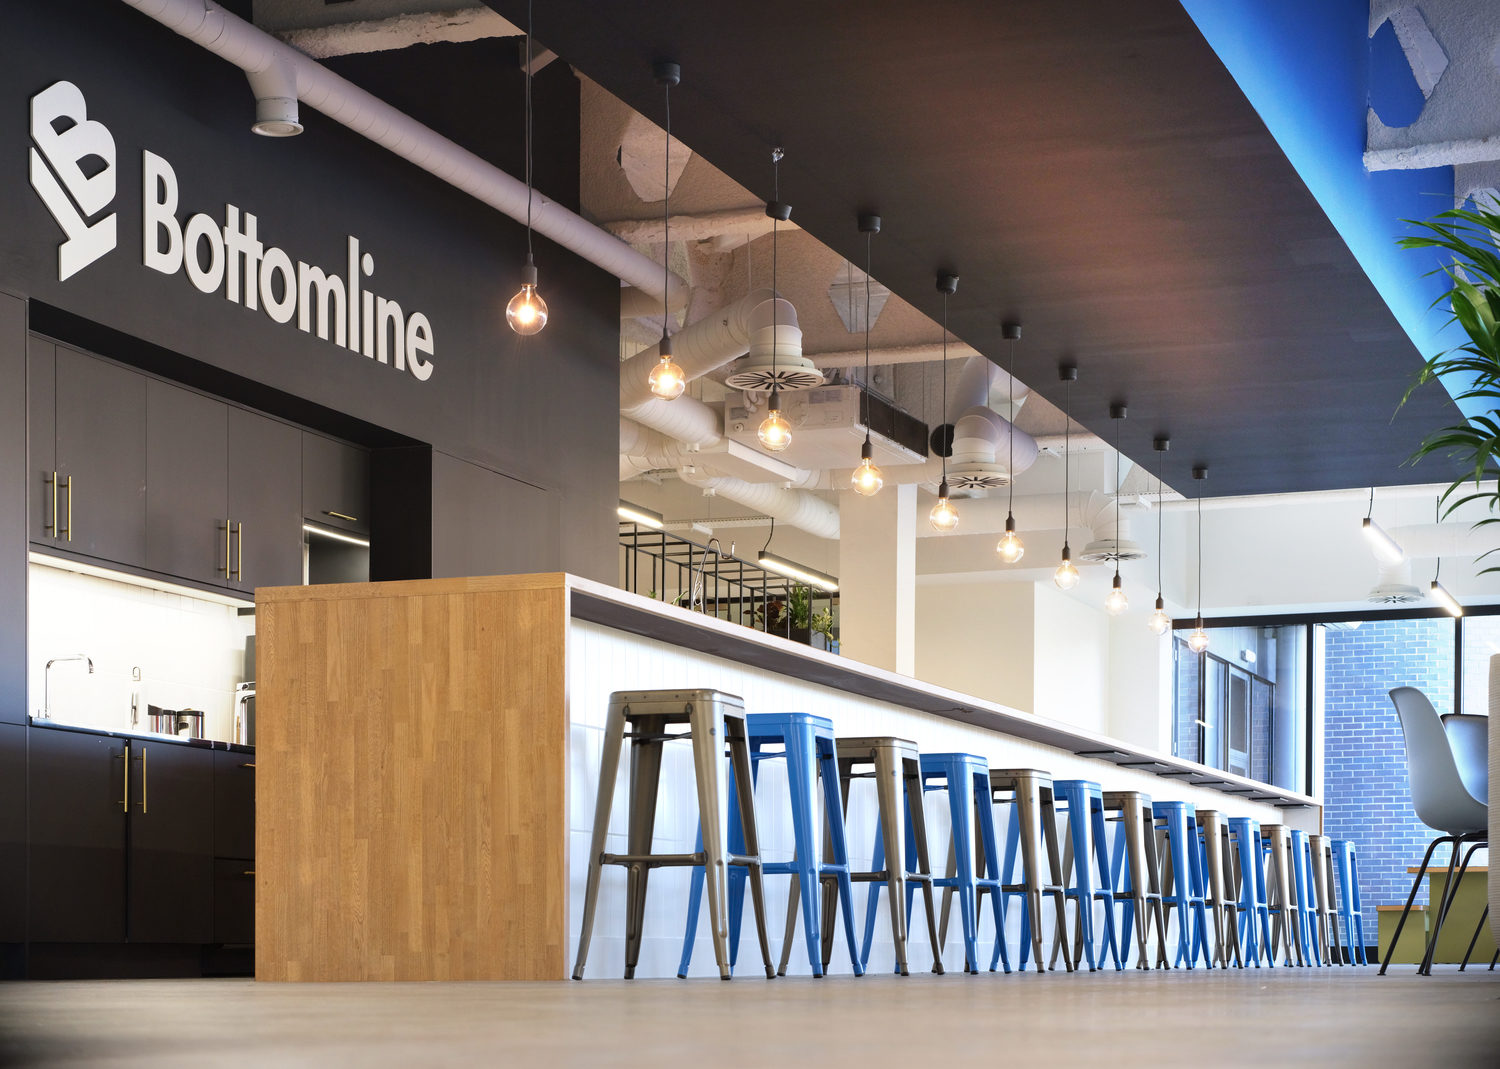 Bottomline staff cafe design